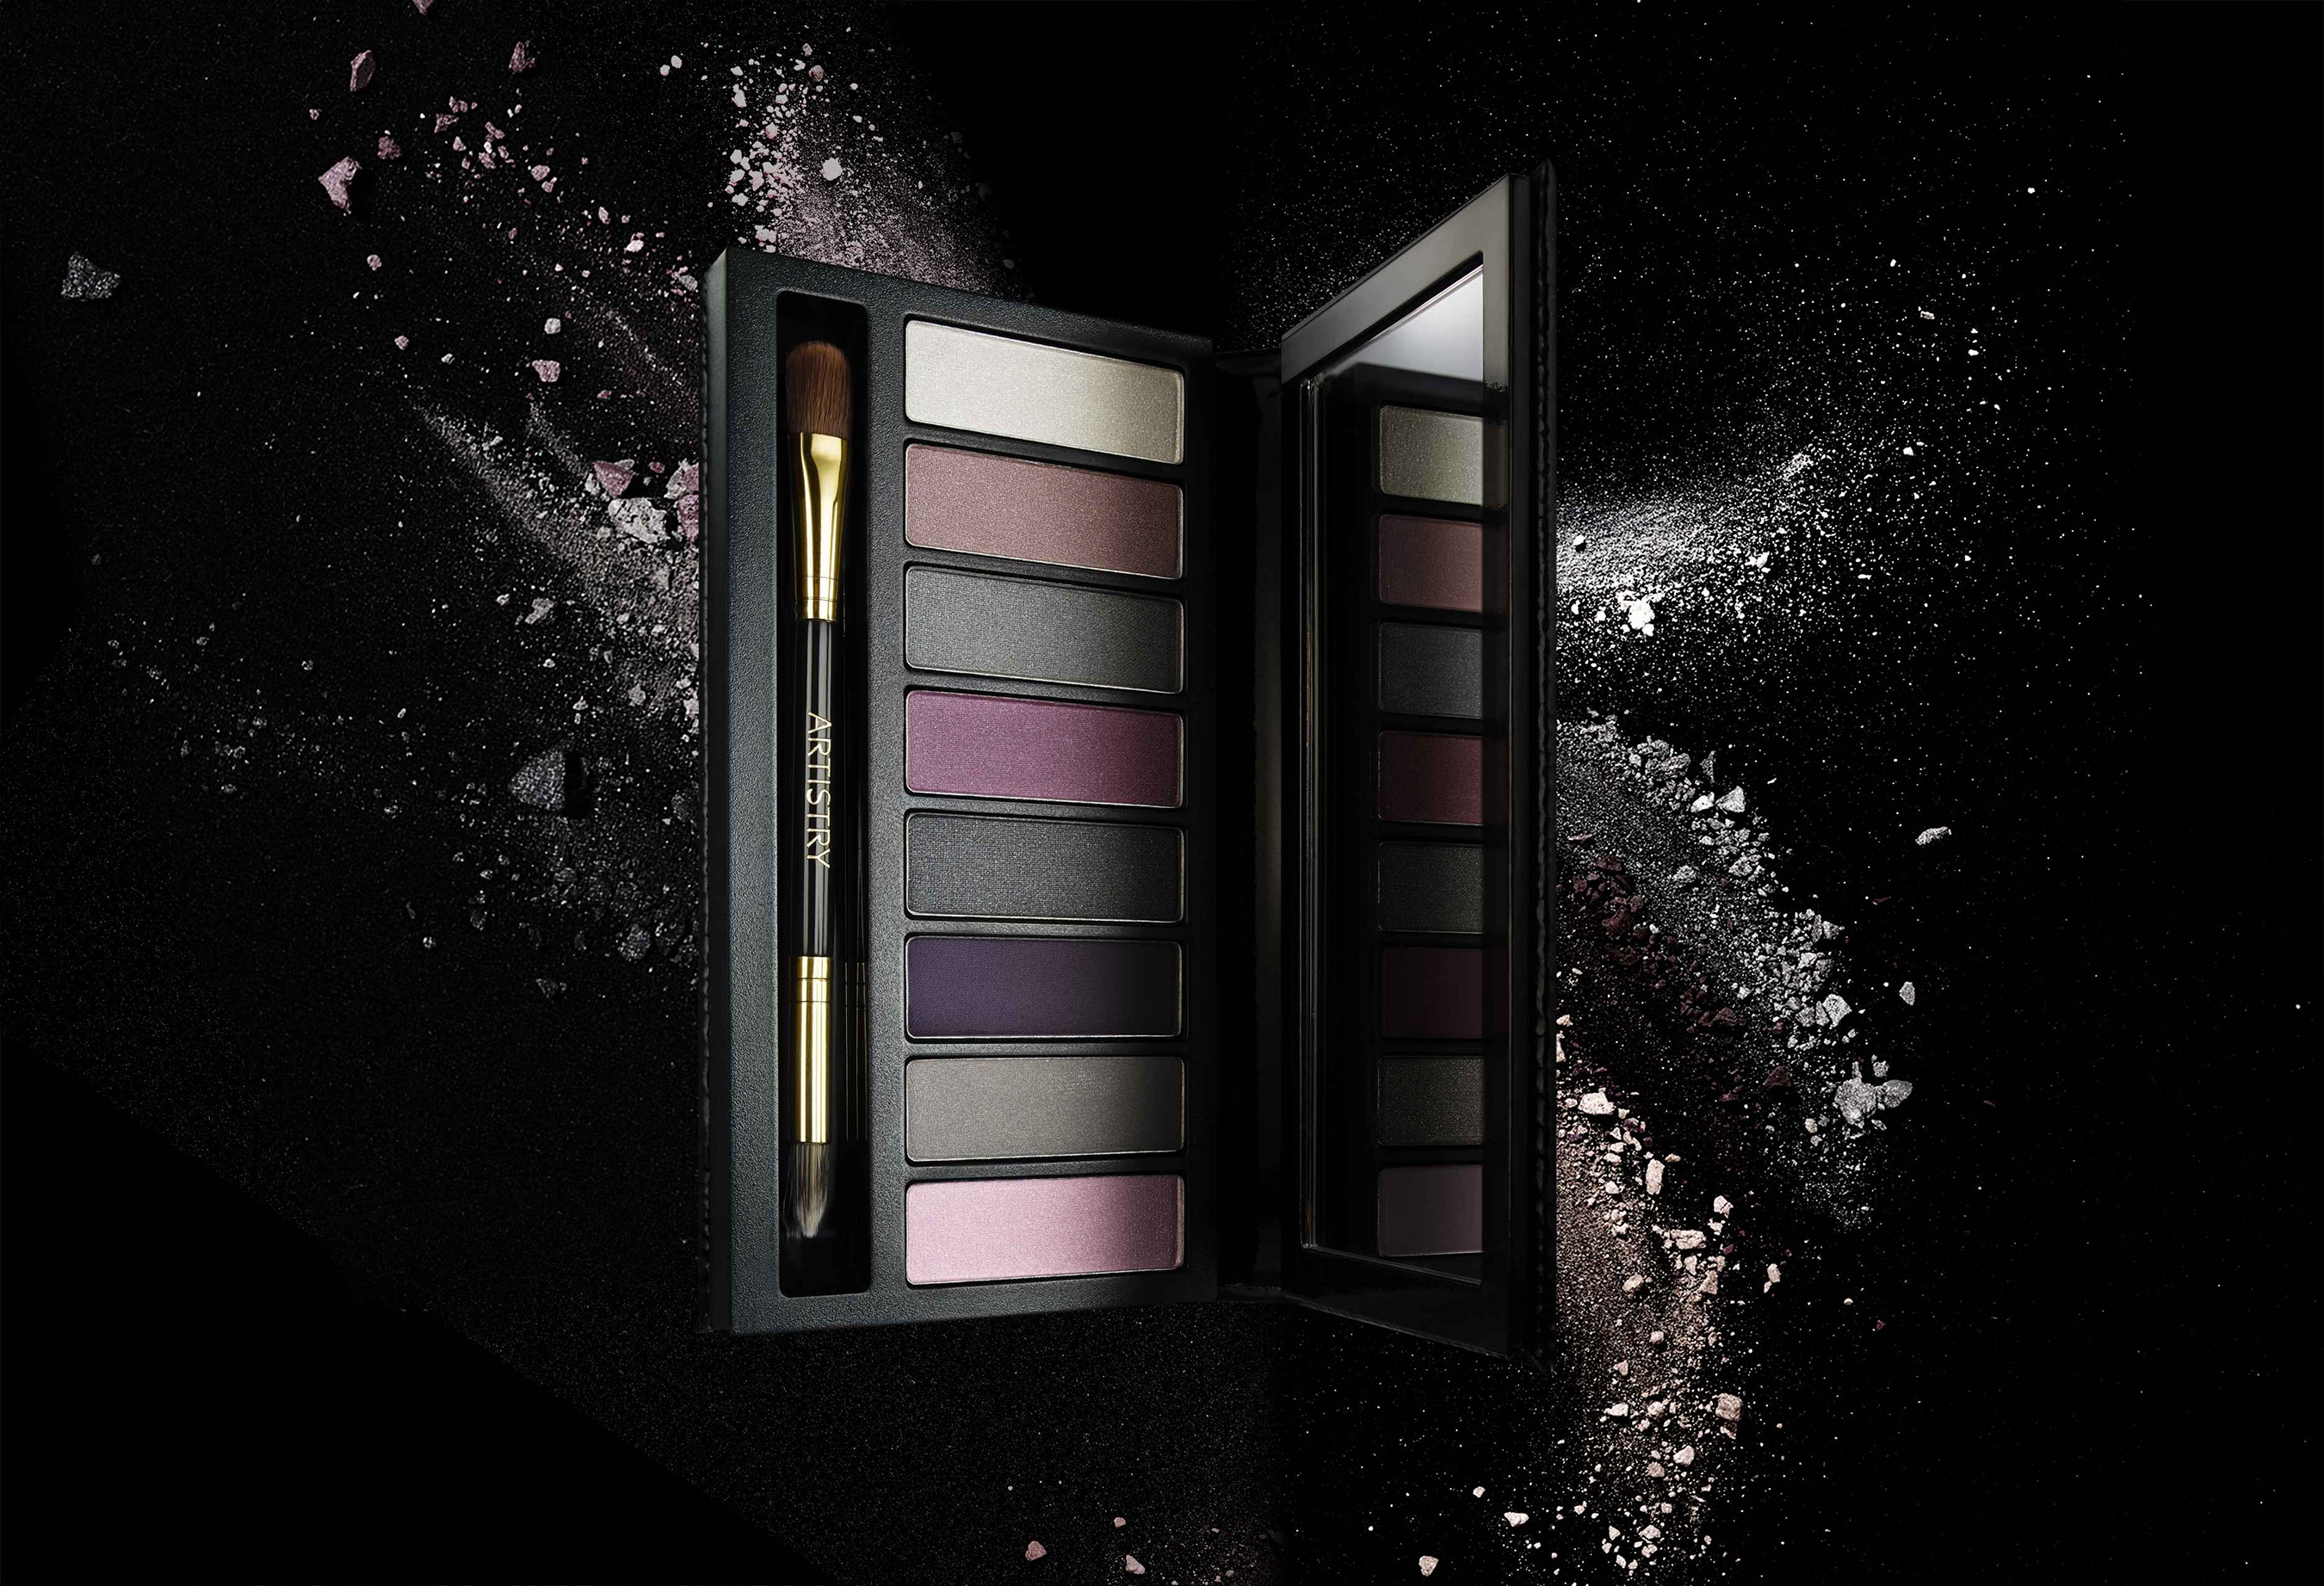 http://www.multivu.com/players/English/7239452-amway-unveils-the-artistry-little-black-dress-color-collection/gallery/image/2fa206ad-cda6-4eae-a871-3deffb9dc470.HR.jpg